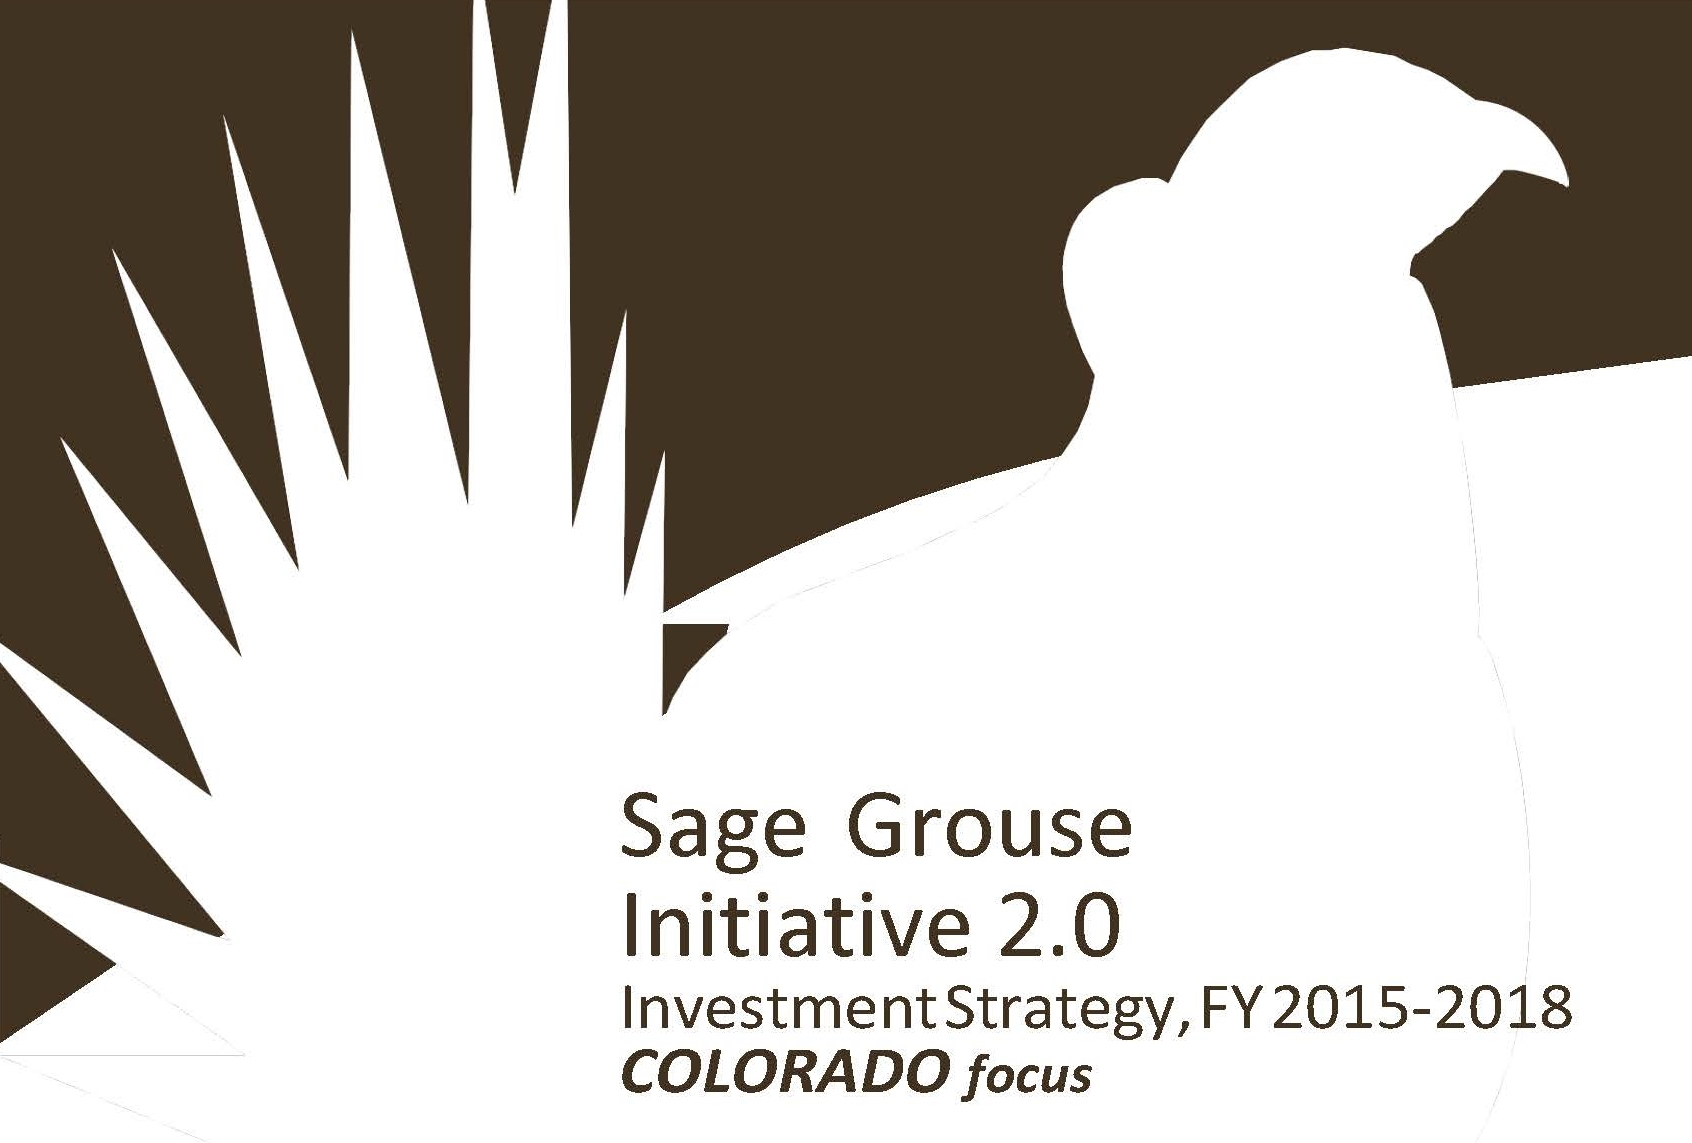 Sage Grouse CO Investment Strategy logo